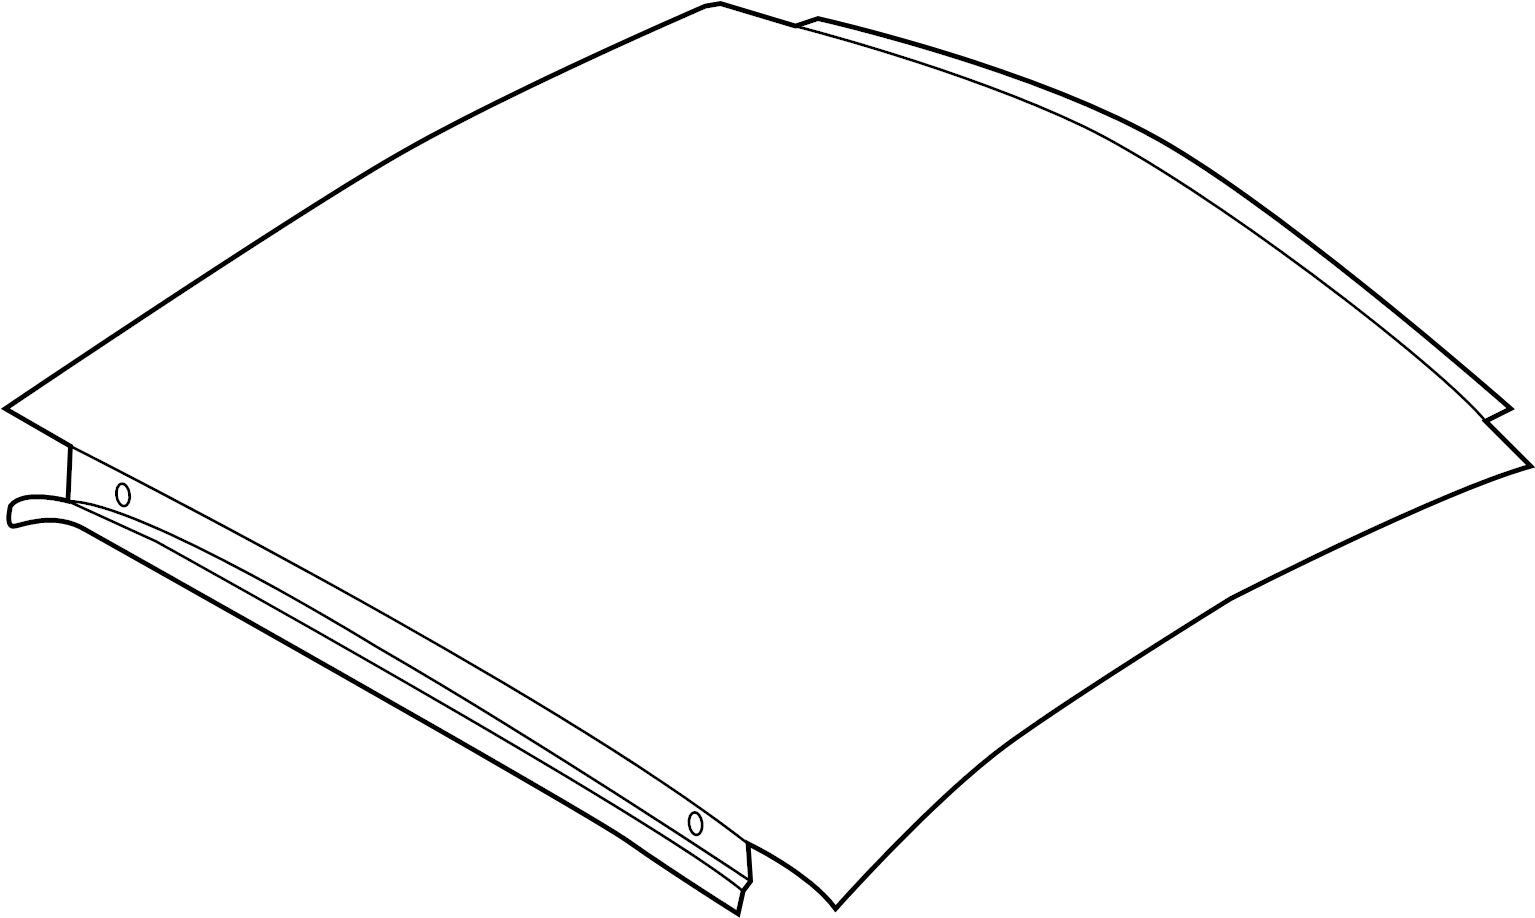 8s8817111 - roof panel  group  components  body